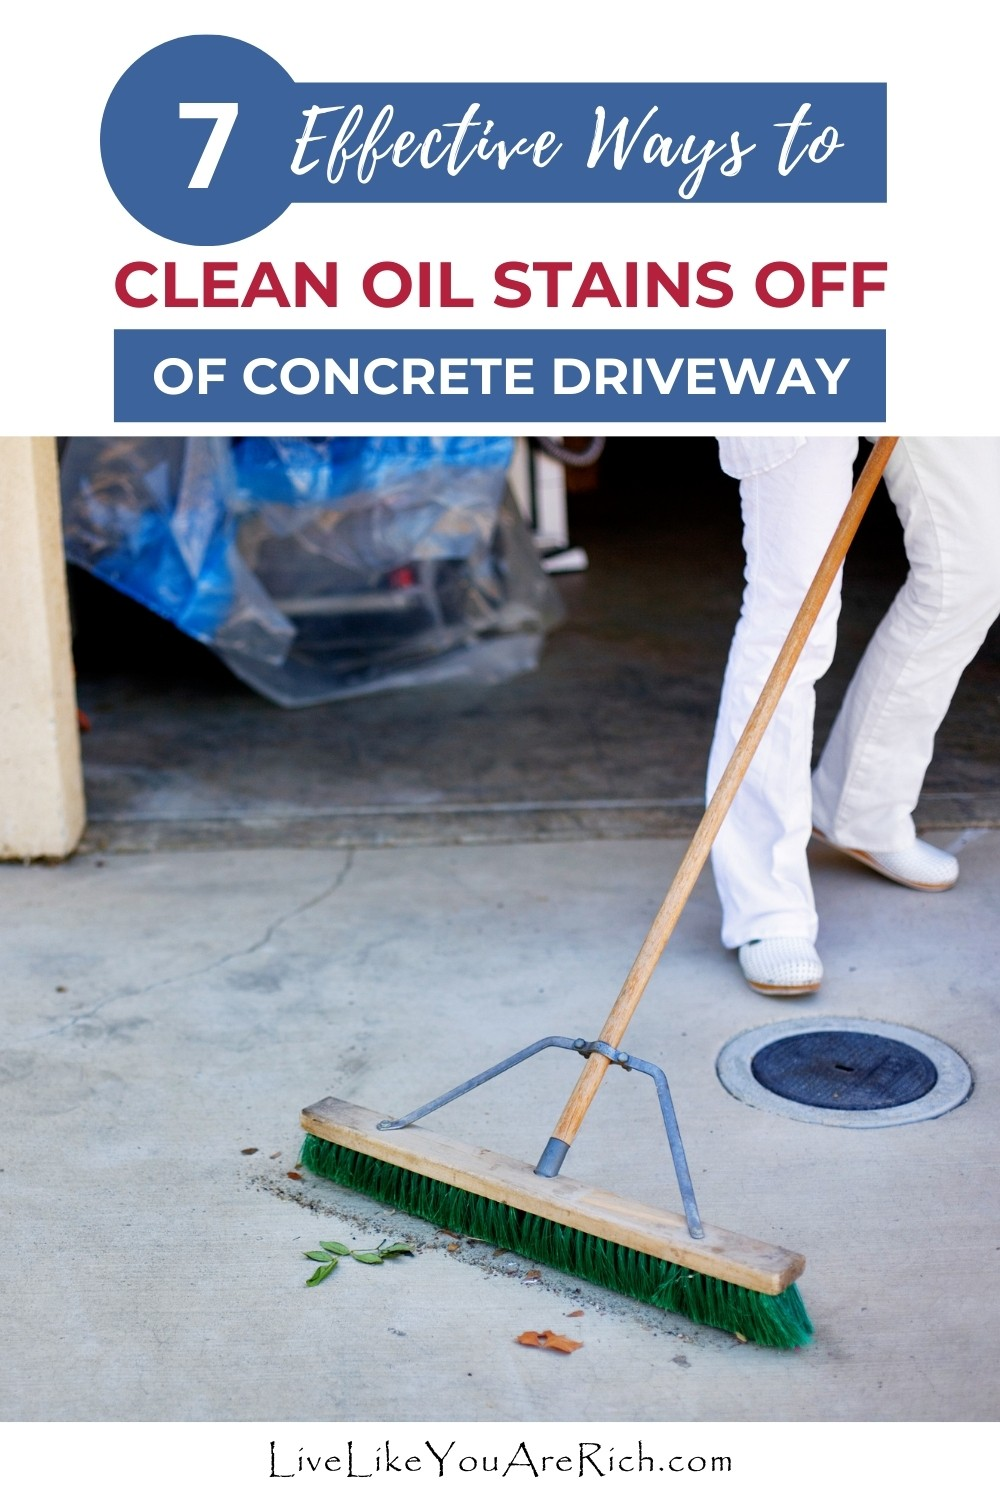 Oil stains on concrete driveways are not just unsightly - they can get tracked into your house or in your car. Removing oil stains from your concrete driveway is not just wiping a food spill on your kitchen. To effectively clean oil stains you need to adjust your ways and use greater force in combination with chemicals.